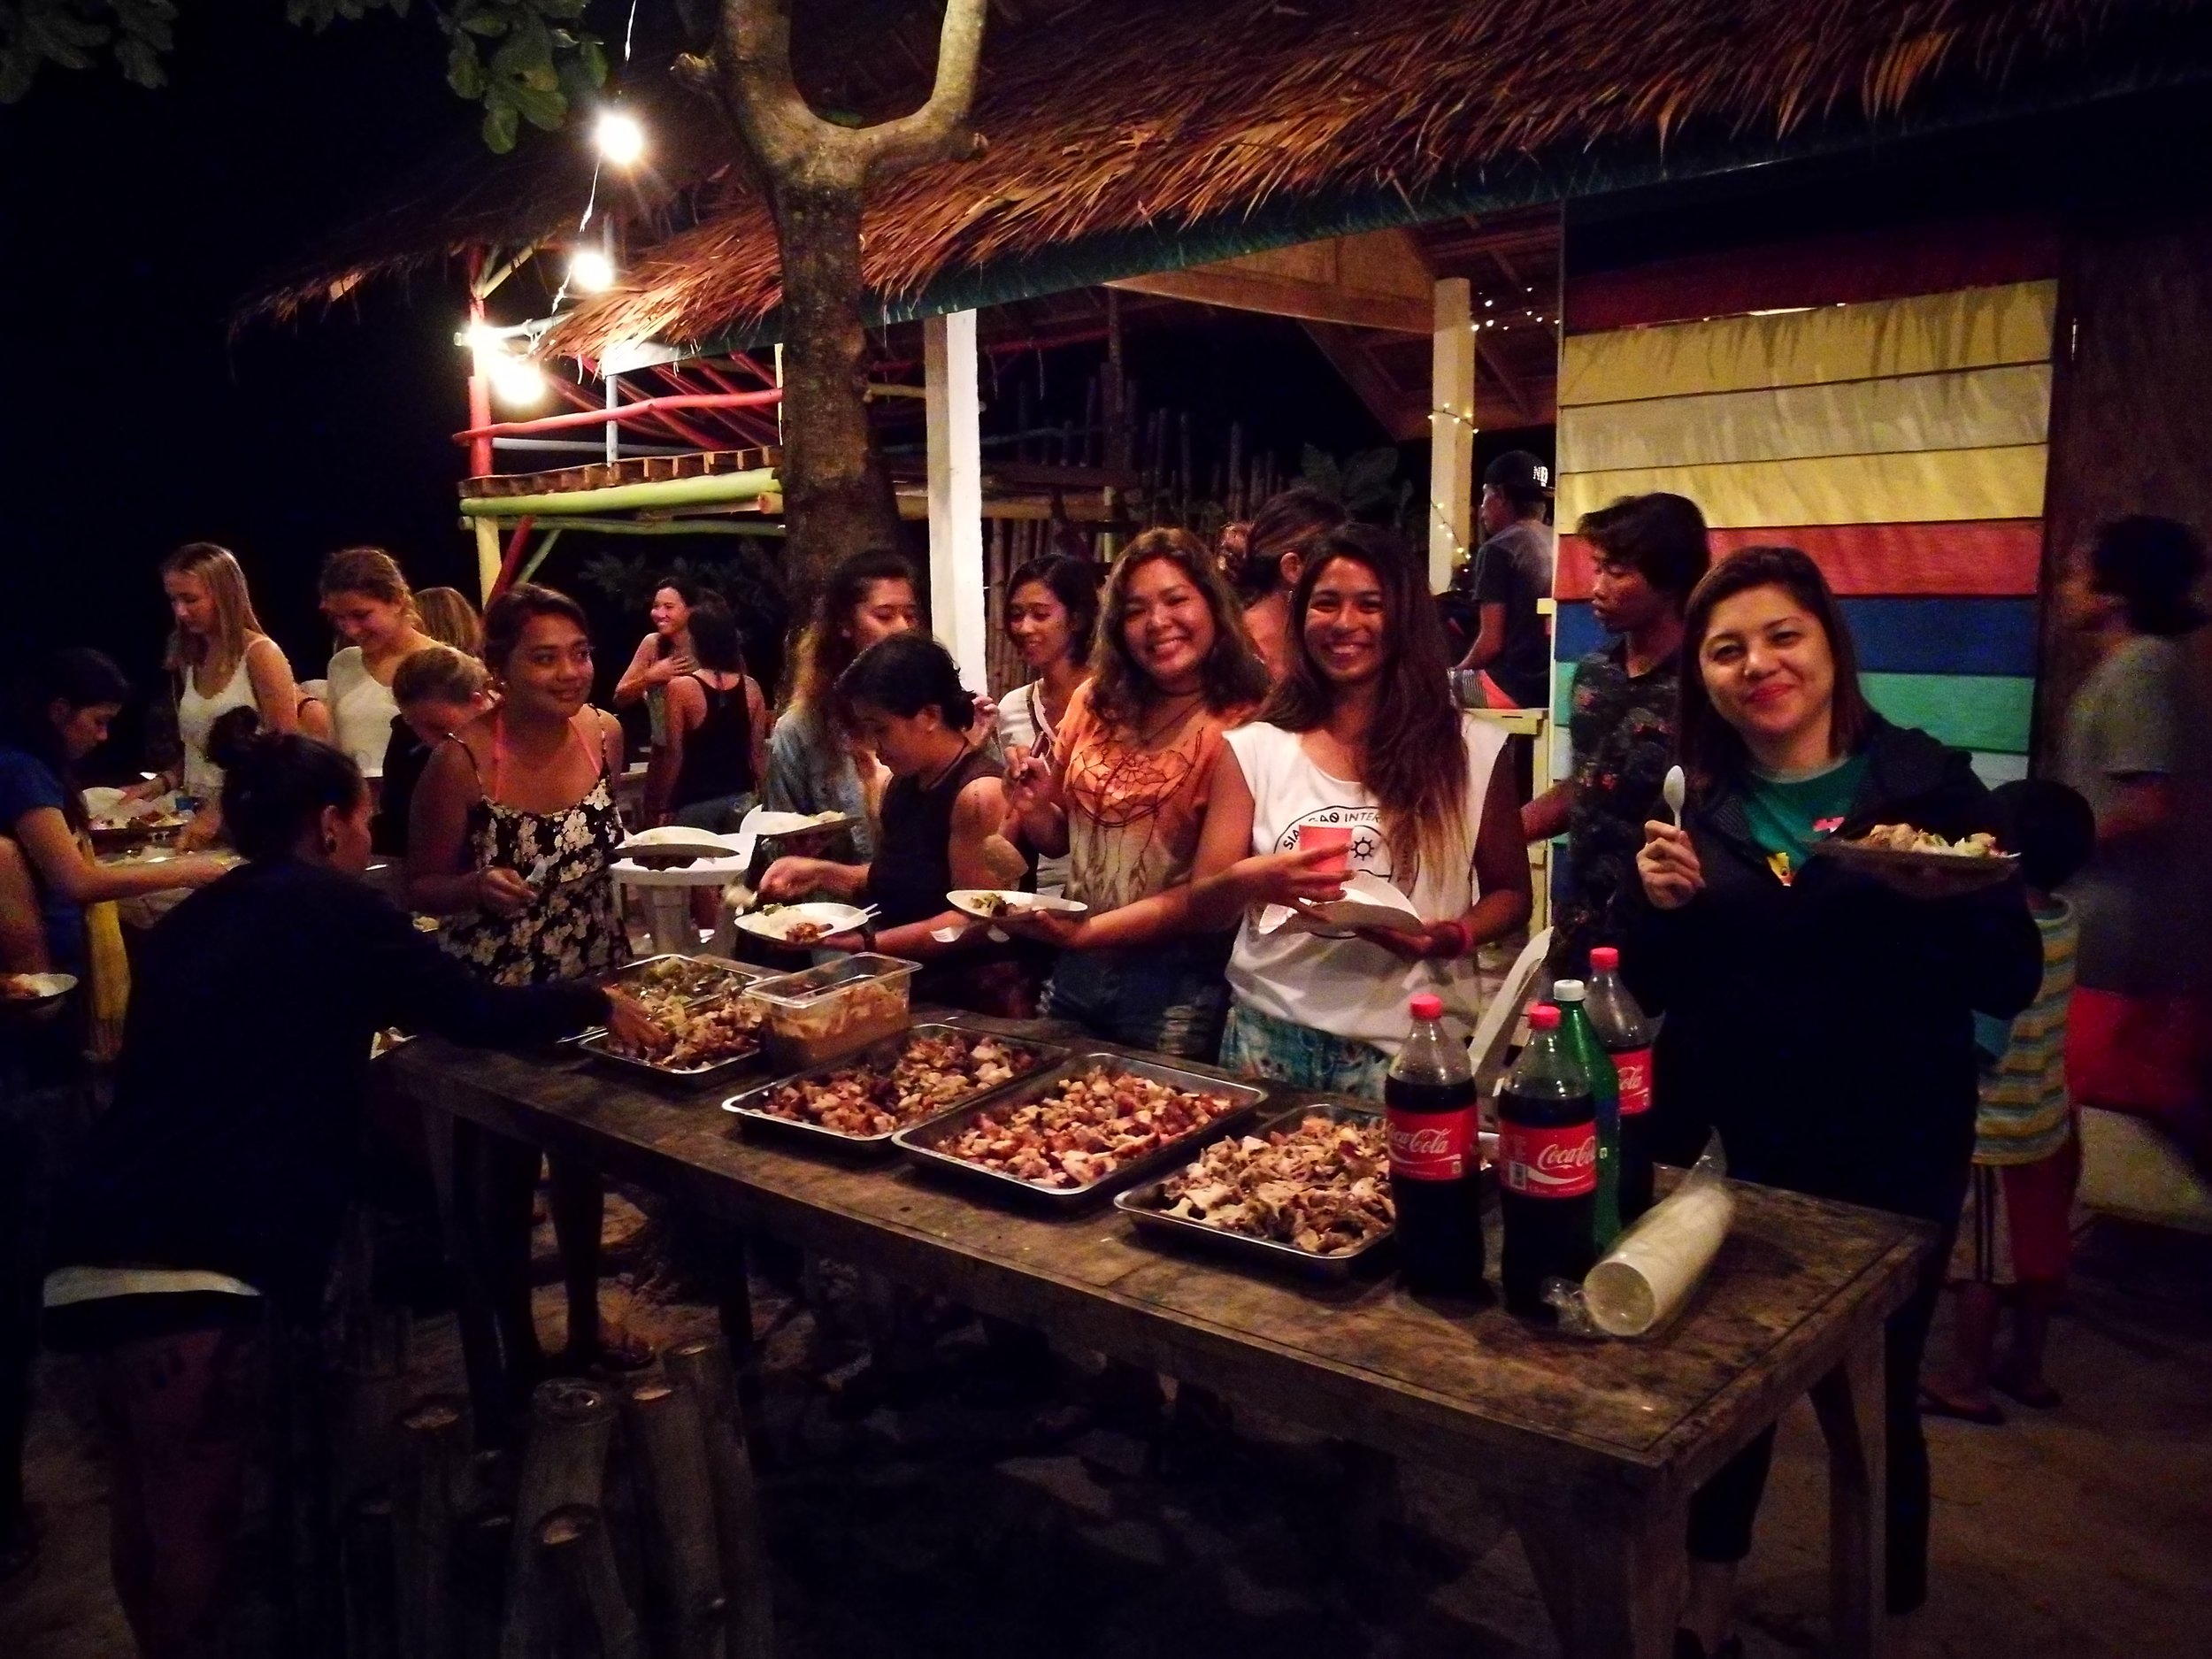 DSR guests, Dahican locals and surfing community get together for dinner prepared by Surf Shack's Jek-Jek Ilagan.